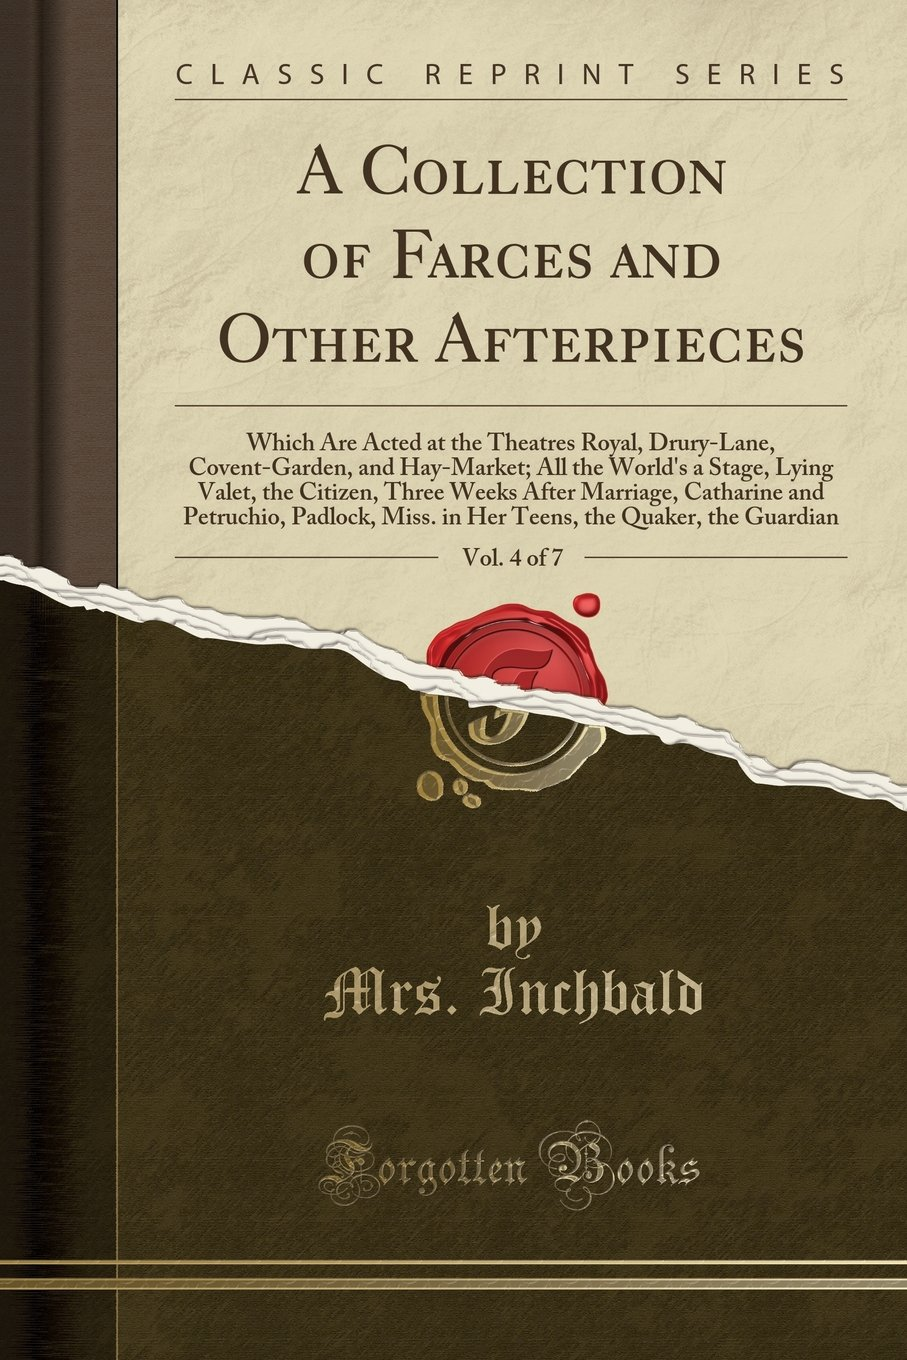 A Collection of Farces and Other Afterpieces, Vol. 4 of 7: Which Are Acted at the Theatres Royal, Drury-Lane, Covent-Garden, and Hay-Market; All the ... Marriage, Catharine and Petruchio, Padlock, M pdf epub